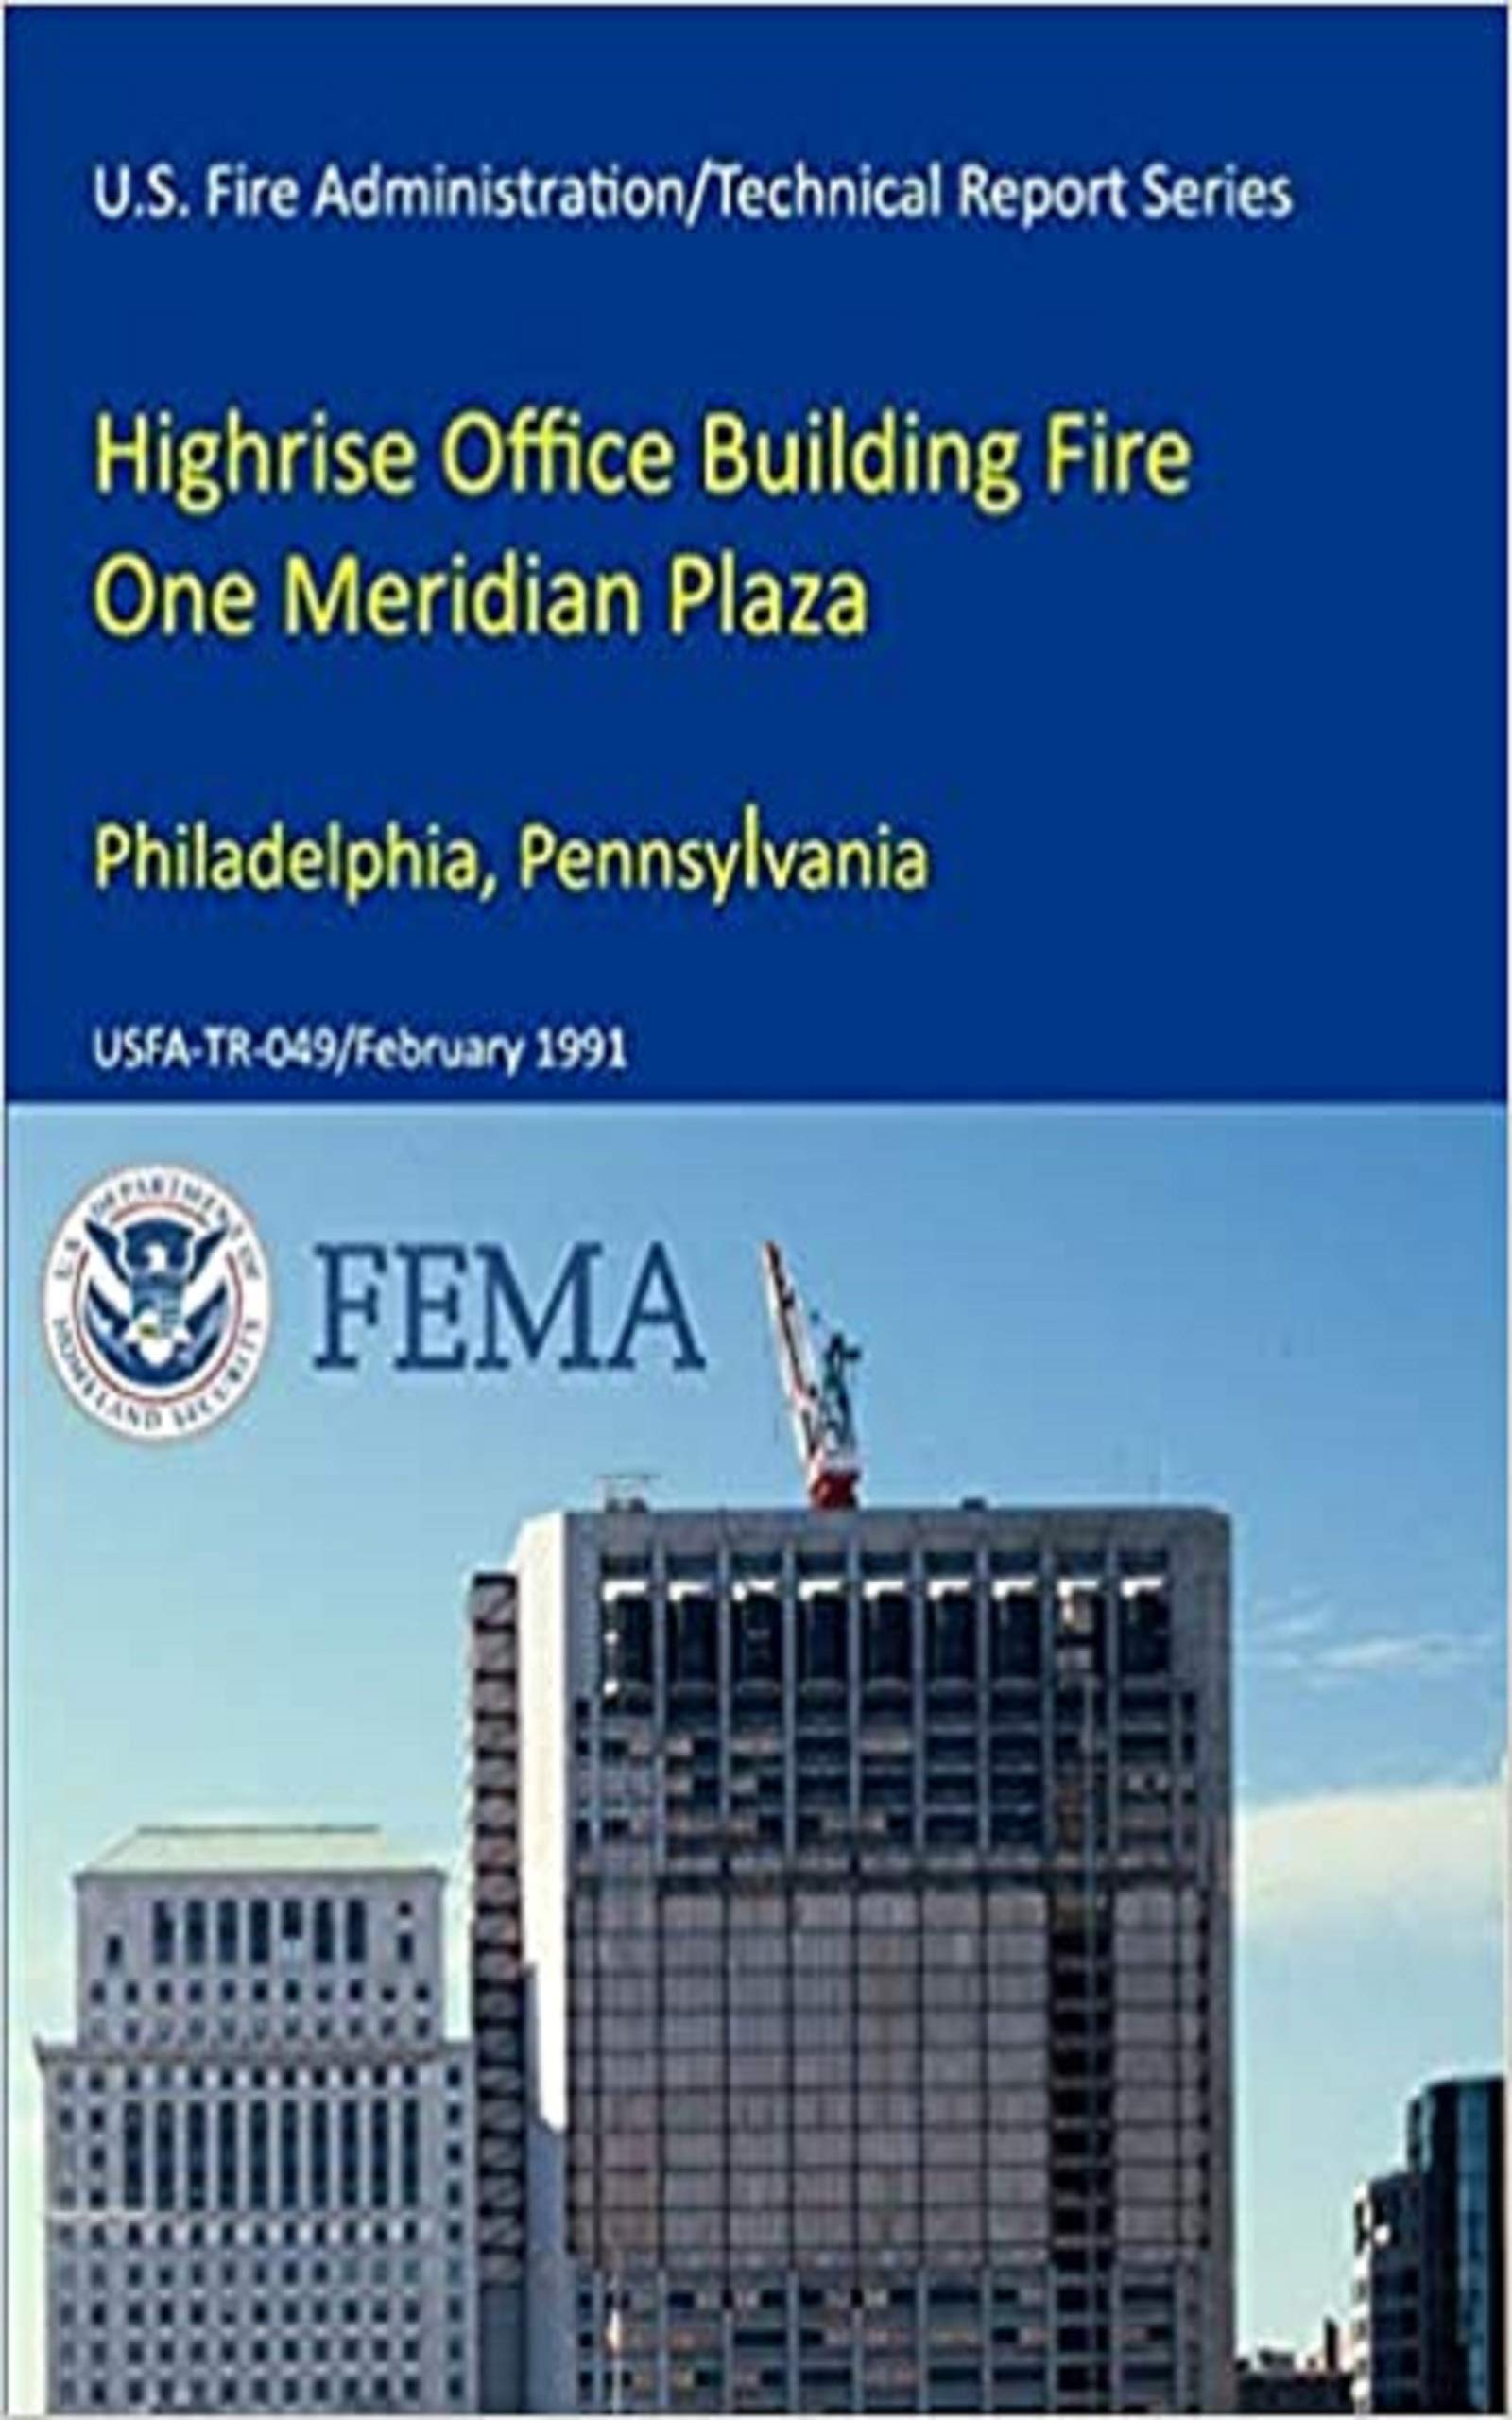 Highrise Office Building Fire One Meridian Plaza Philadelphia, Pennsylvania (U.S. Fire Administration/Technical Report Series) USFA-TR-049